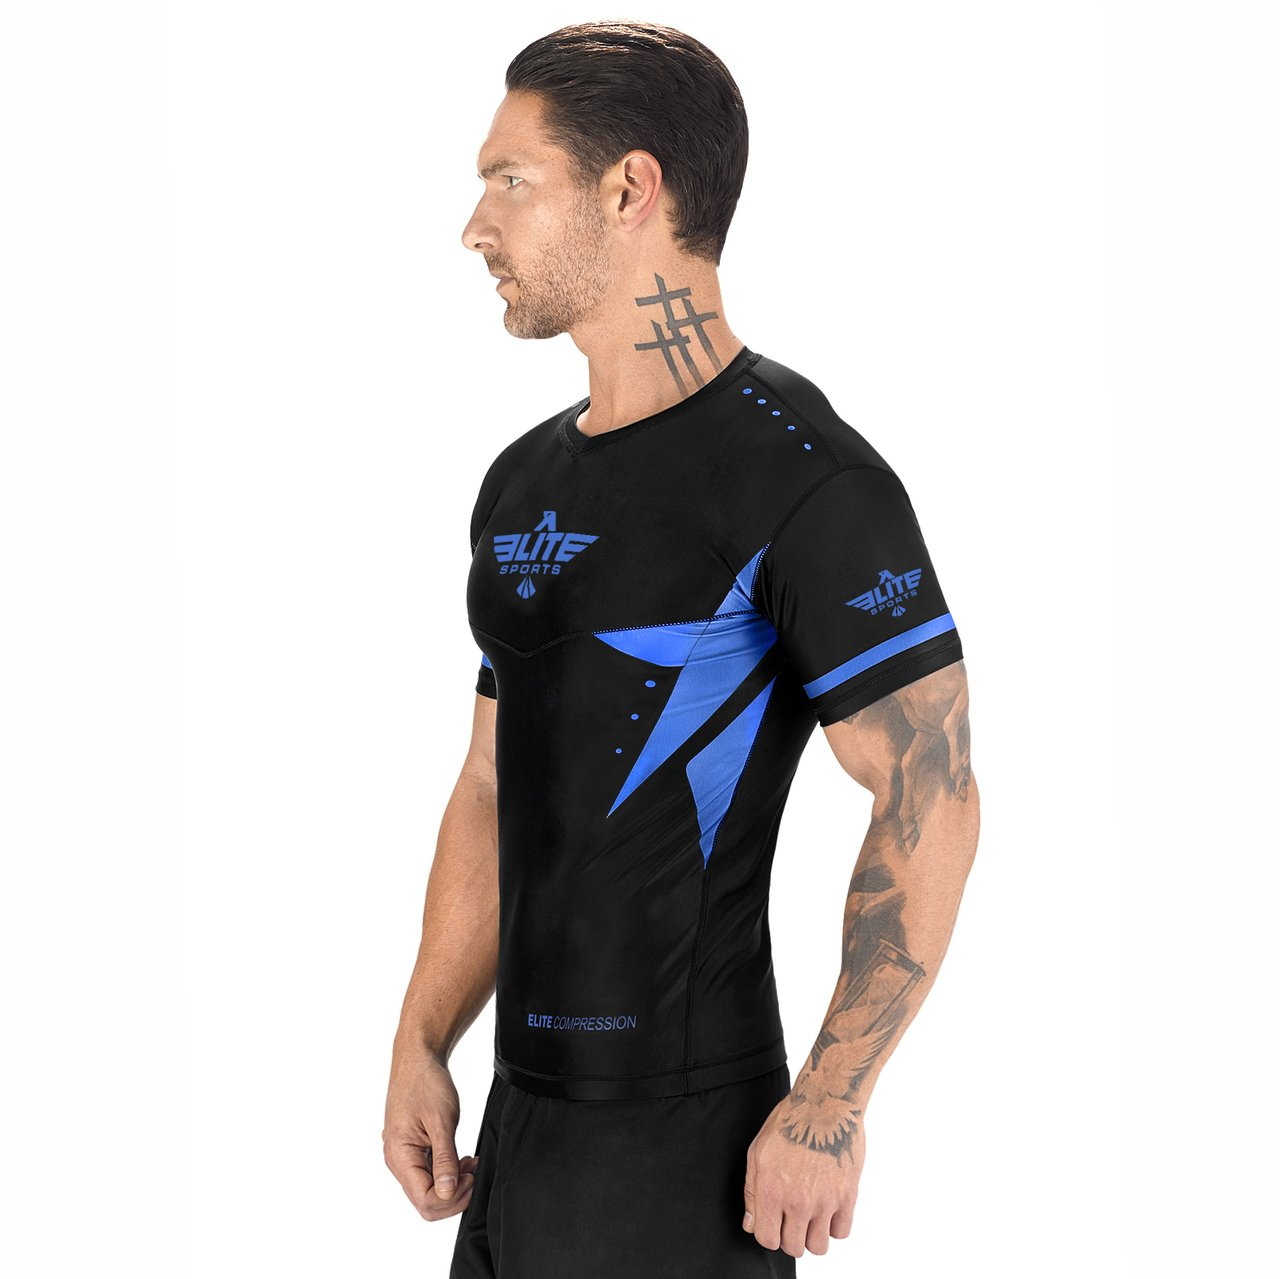 Load image into Gallery viewer, Elite Sports Star Series Sublimation Black/Blue Short Sleeve Wrestling Rash Guard